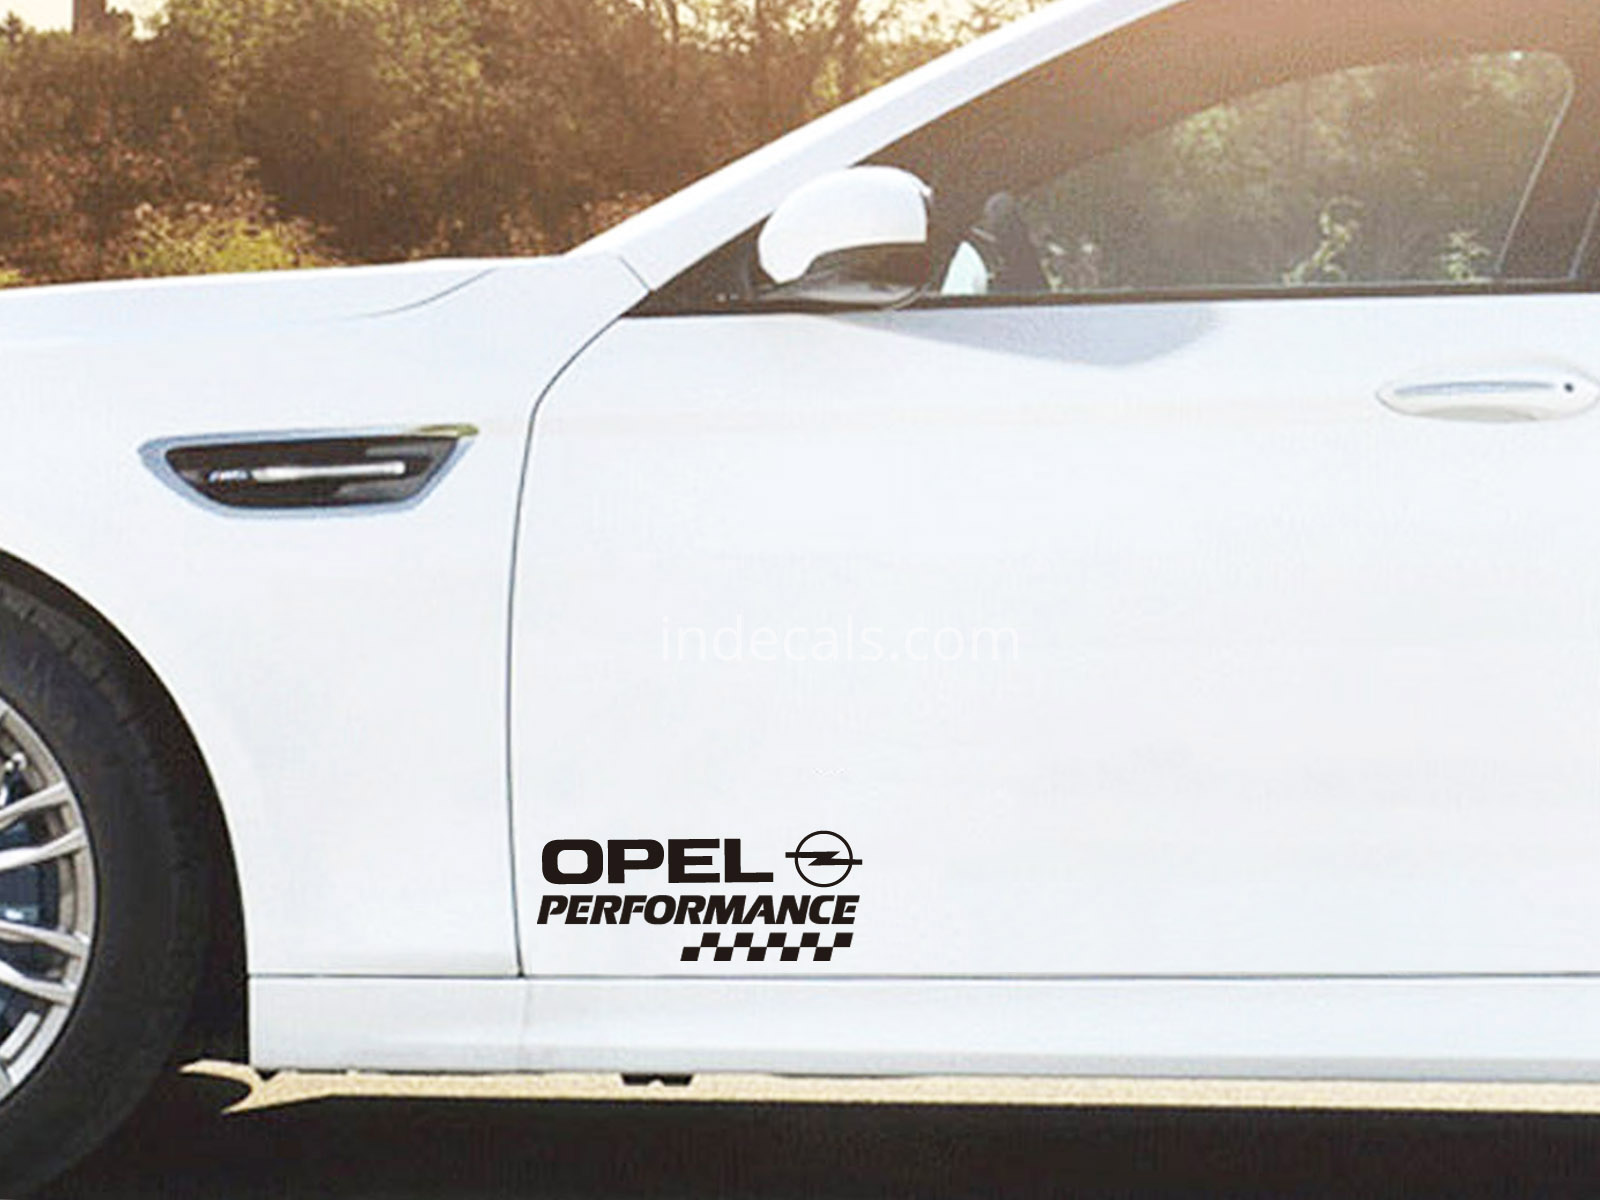 2 x Opel Performance Stickers for Doors - Black